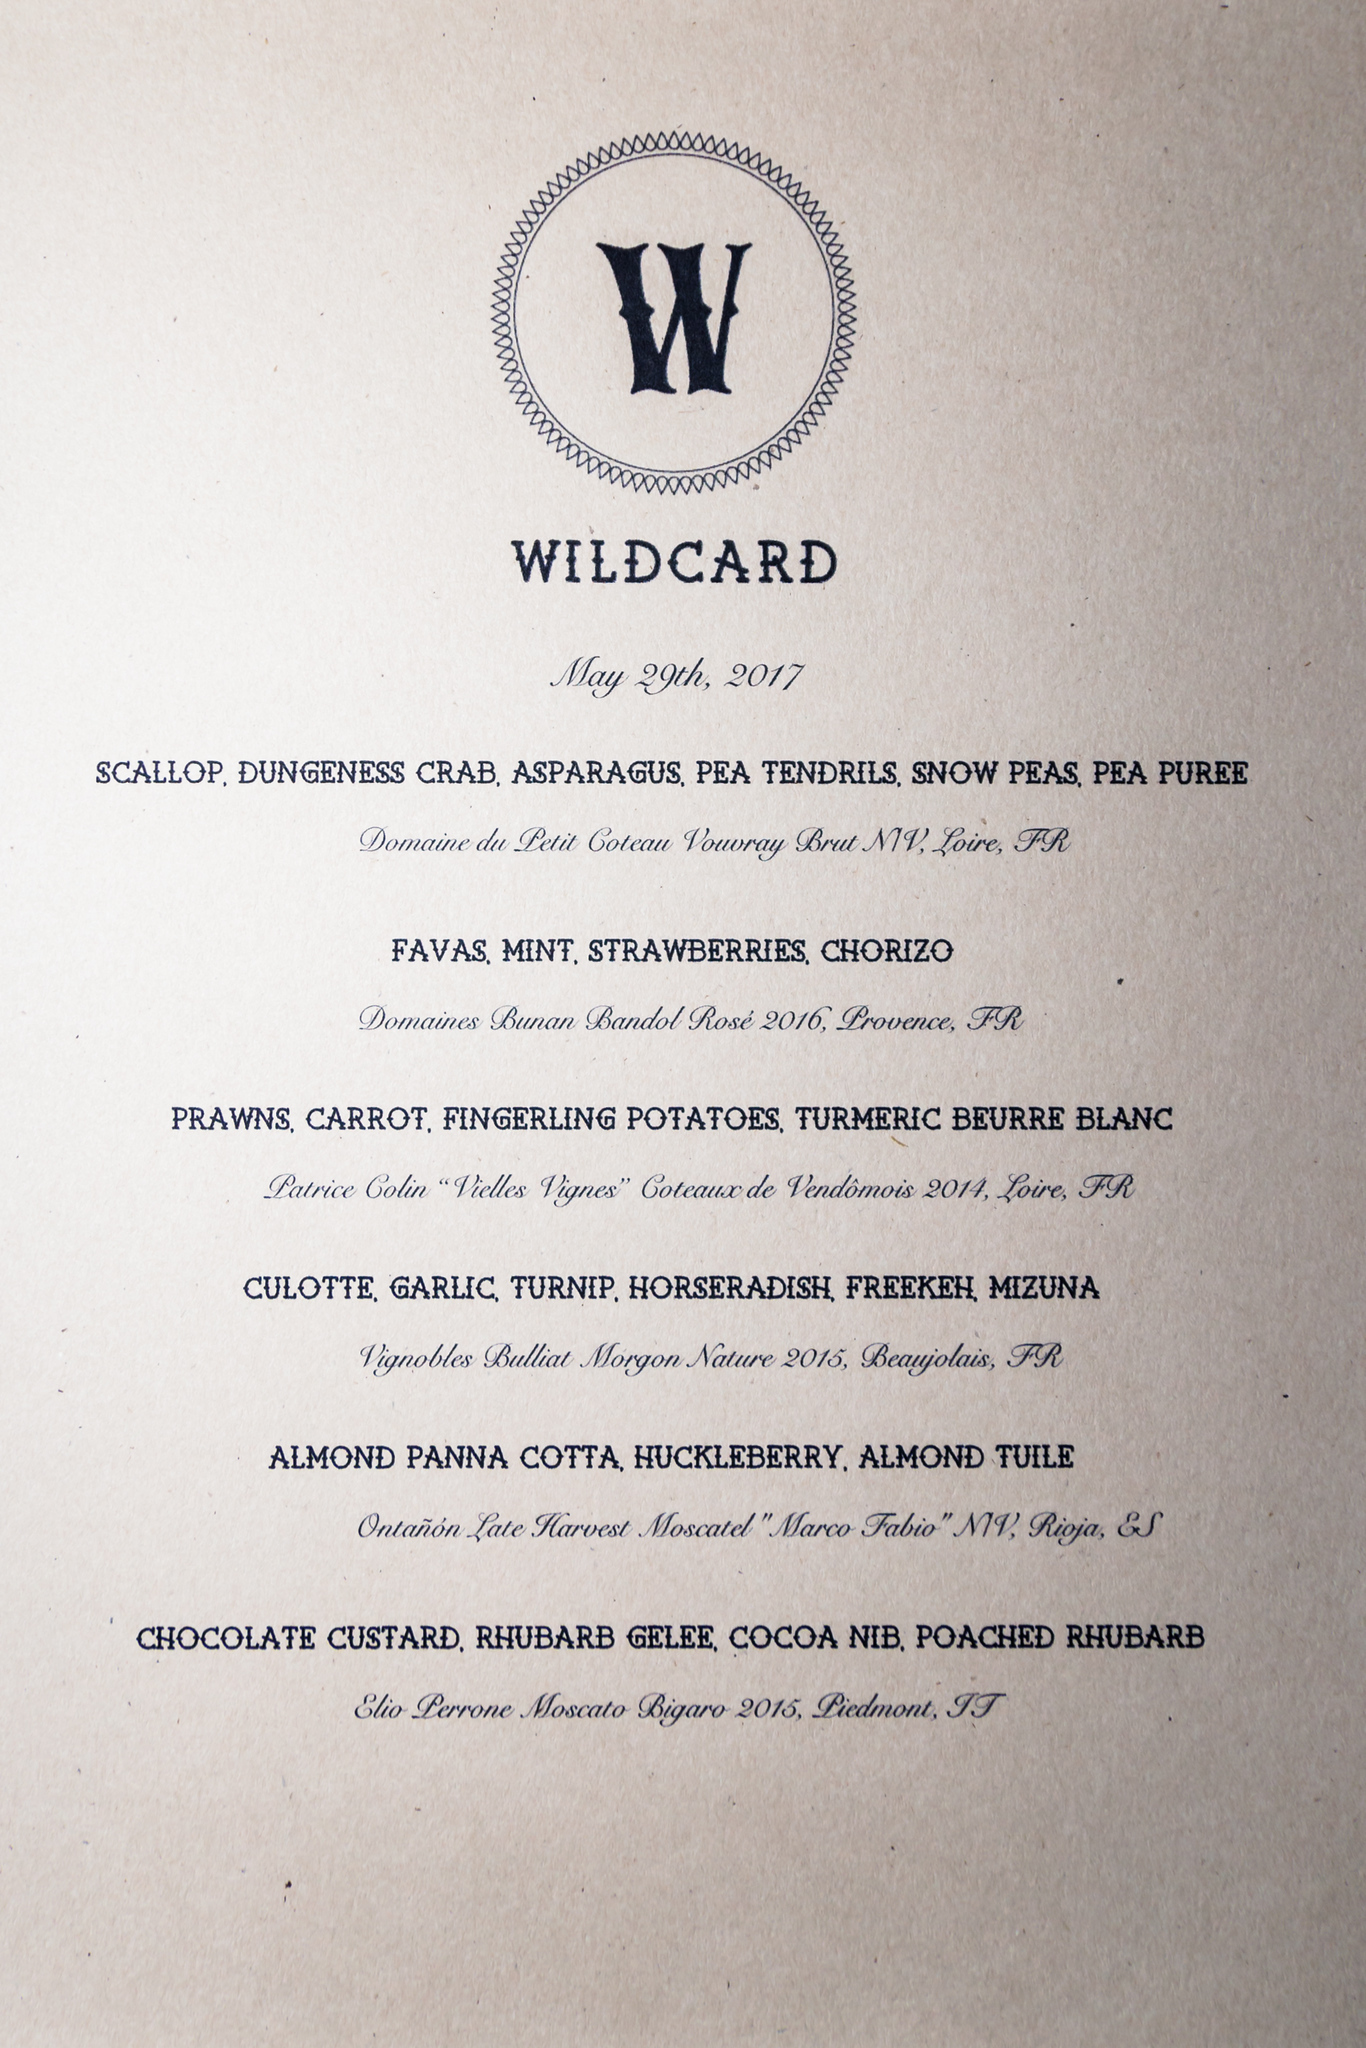 Wildcard PDX Menu 5-29-17